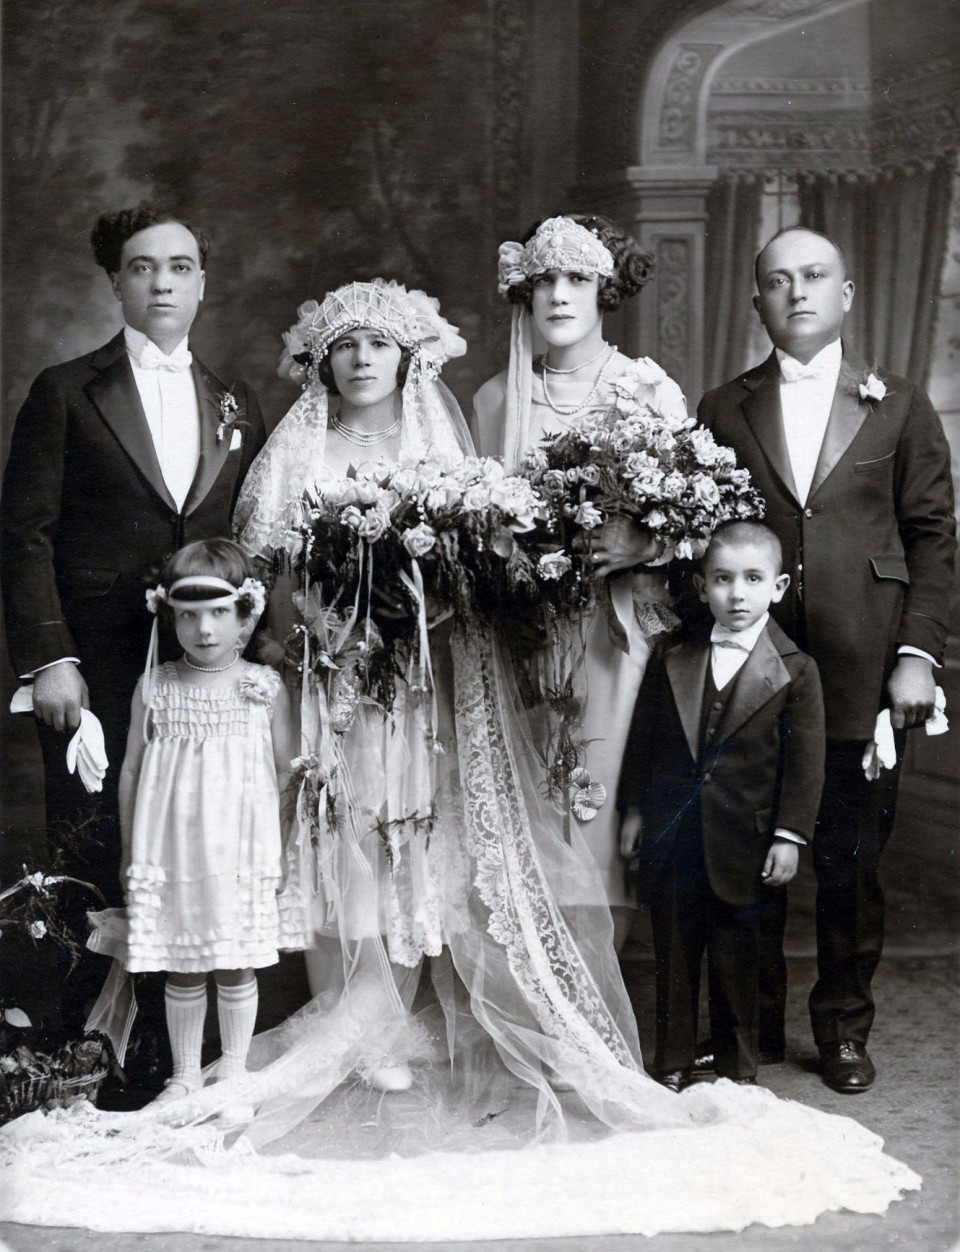 and one more.... A great lady and a Mulberry street legend... my bisnonna's sister in law Anna Maria Cornacchia-Gifoli on her wedding day.  She never was able to have kids but was a nonna to all that new her.  Her husband Crestino Gifoli was from Serramezzano.   Wedding. June 6 1926 - Geraldo Maffea and Irene Trezza as witnesses. Also my Grandmother Filomena is that CUTE little girl.